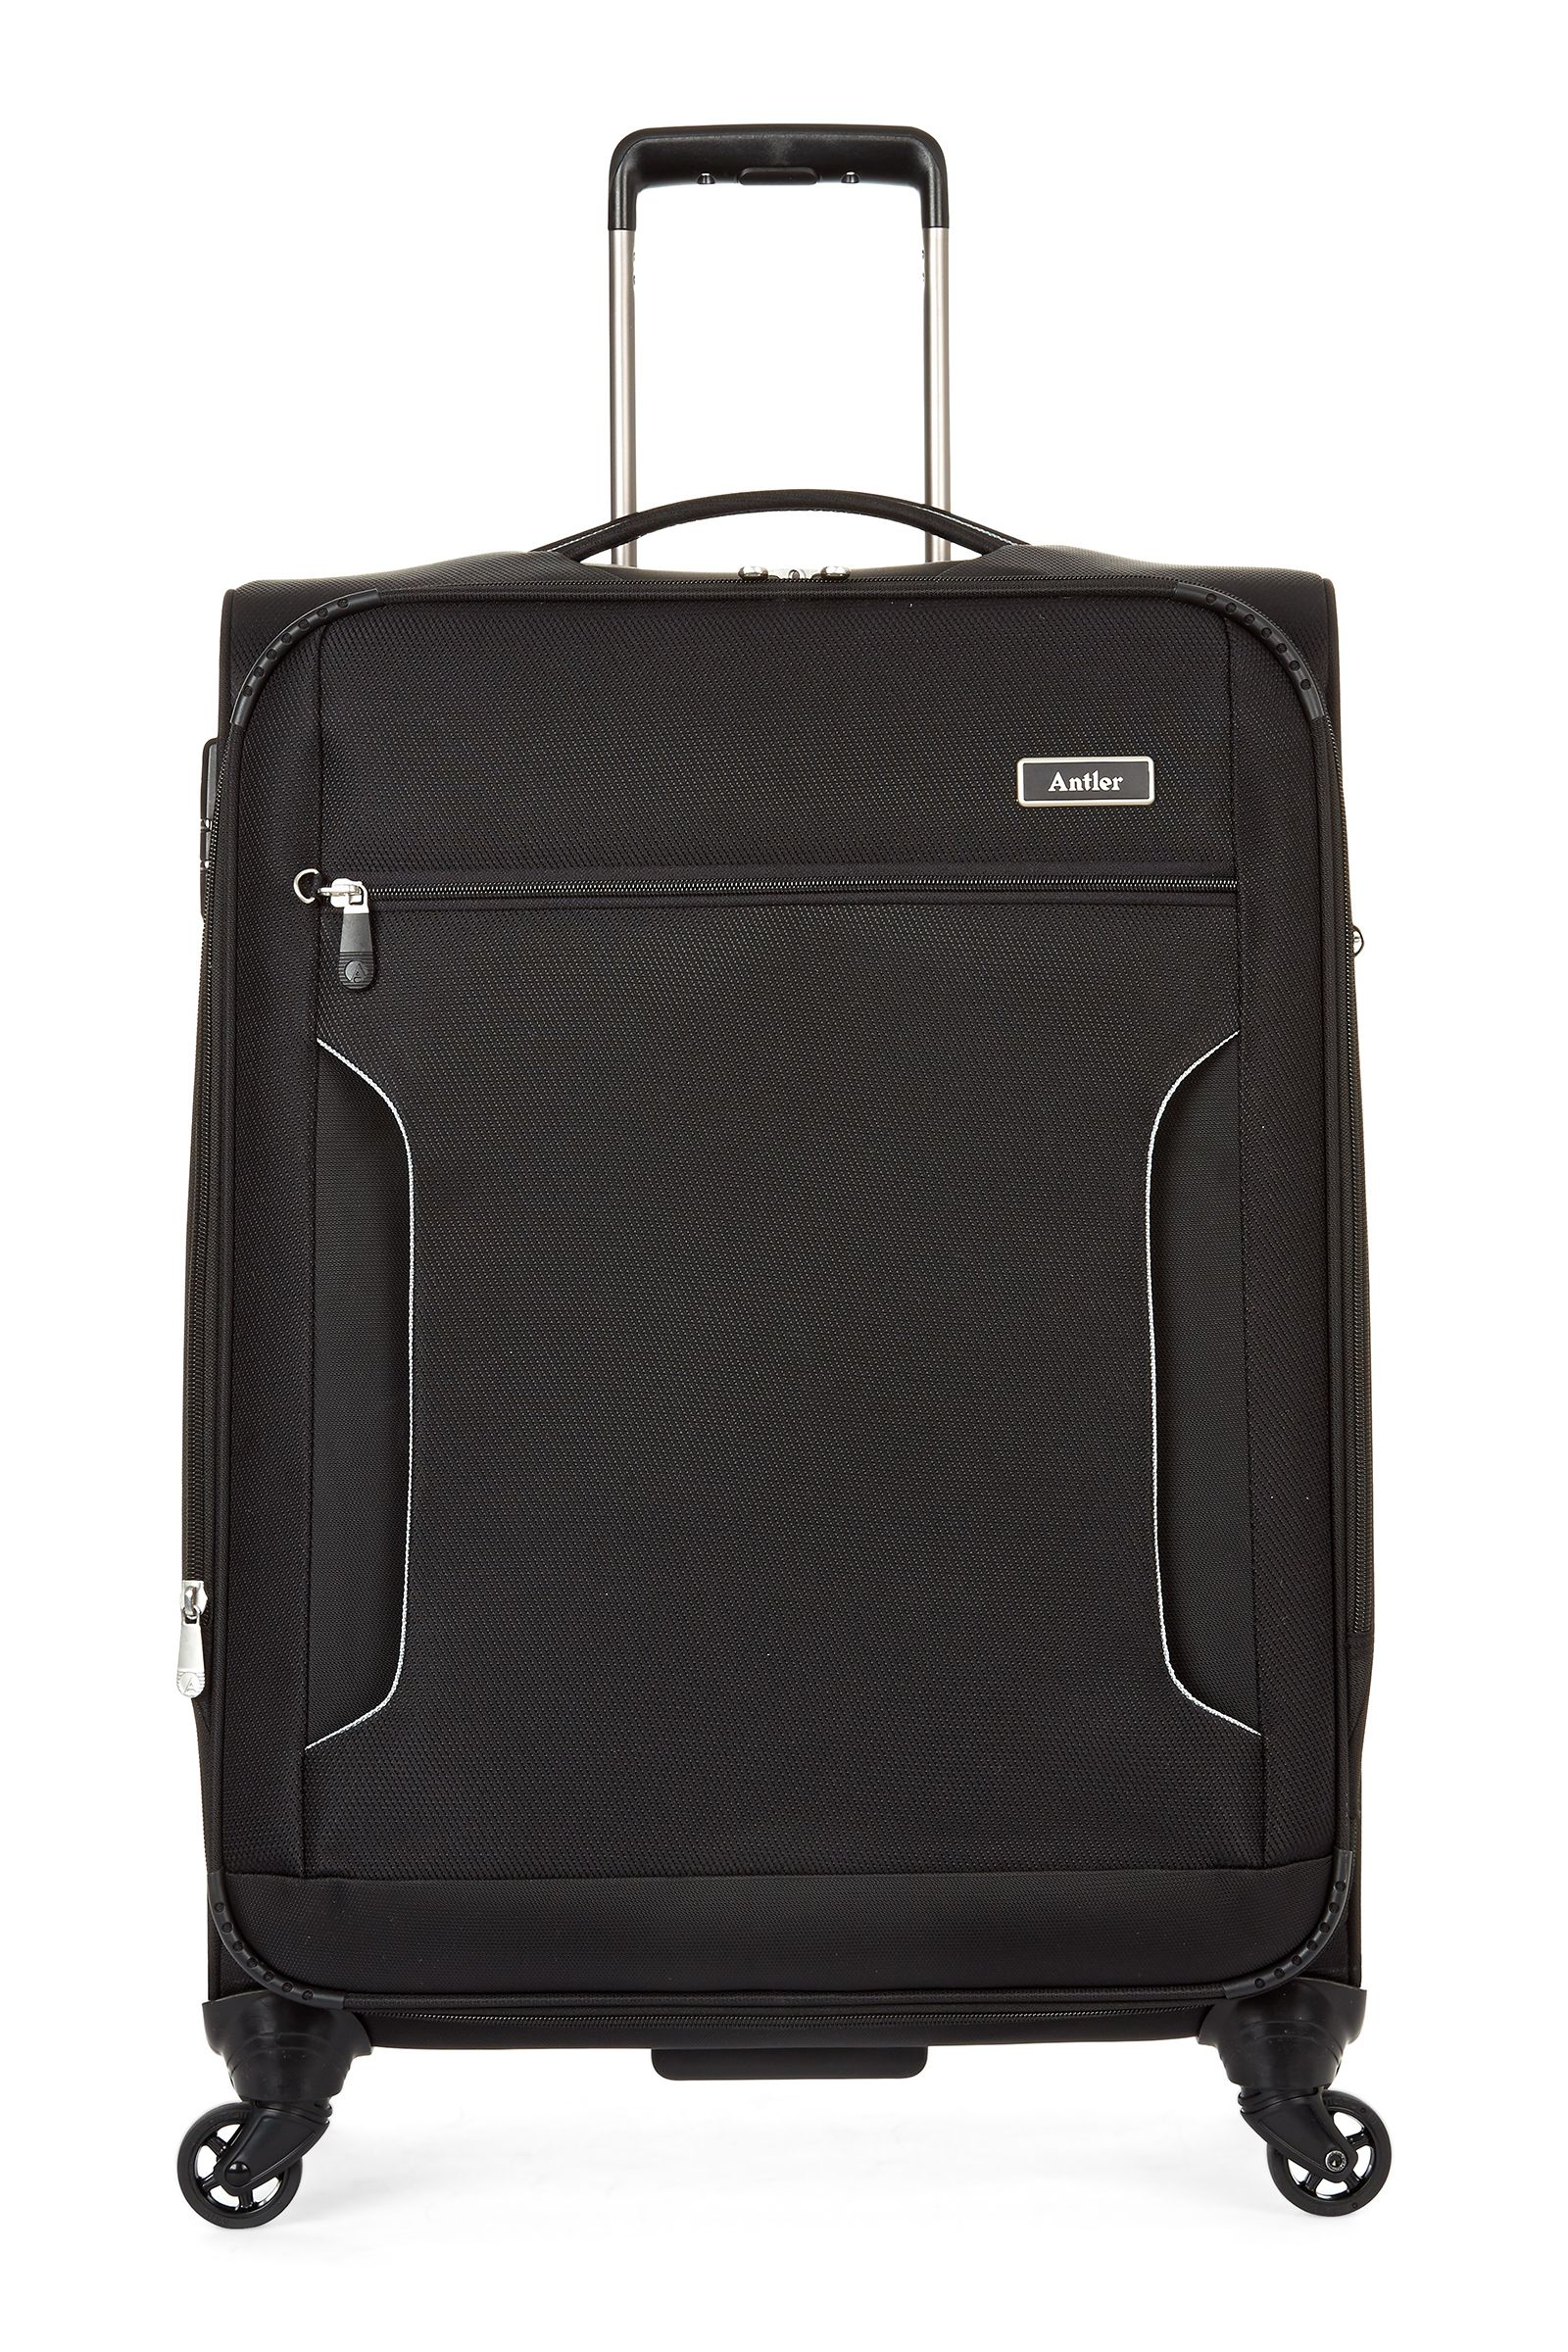 Antler Cyberlite II Black 4 Wheel Soft Medium Suitcase Black